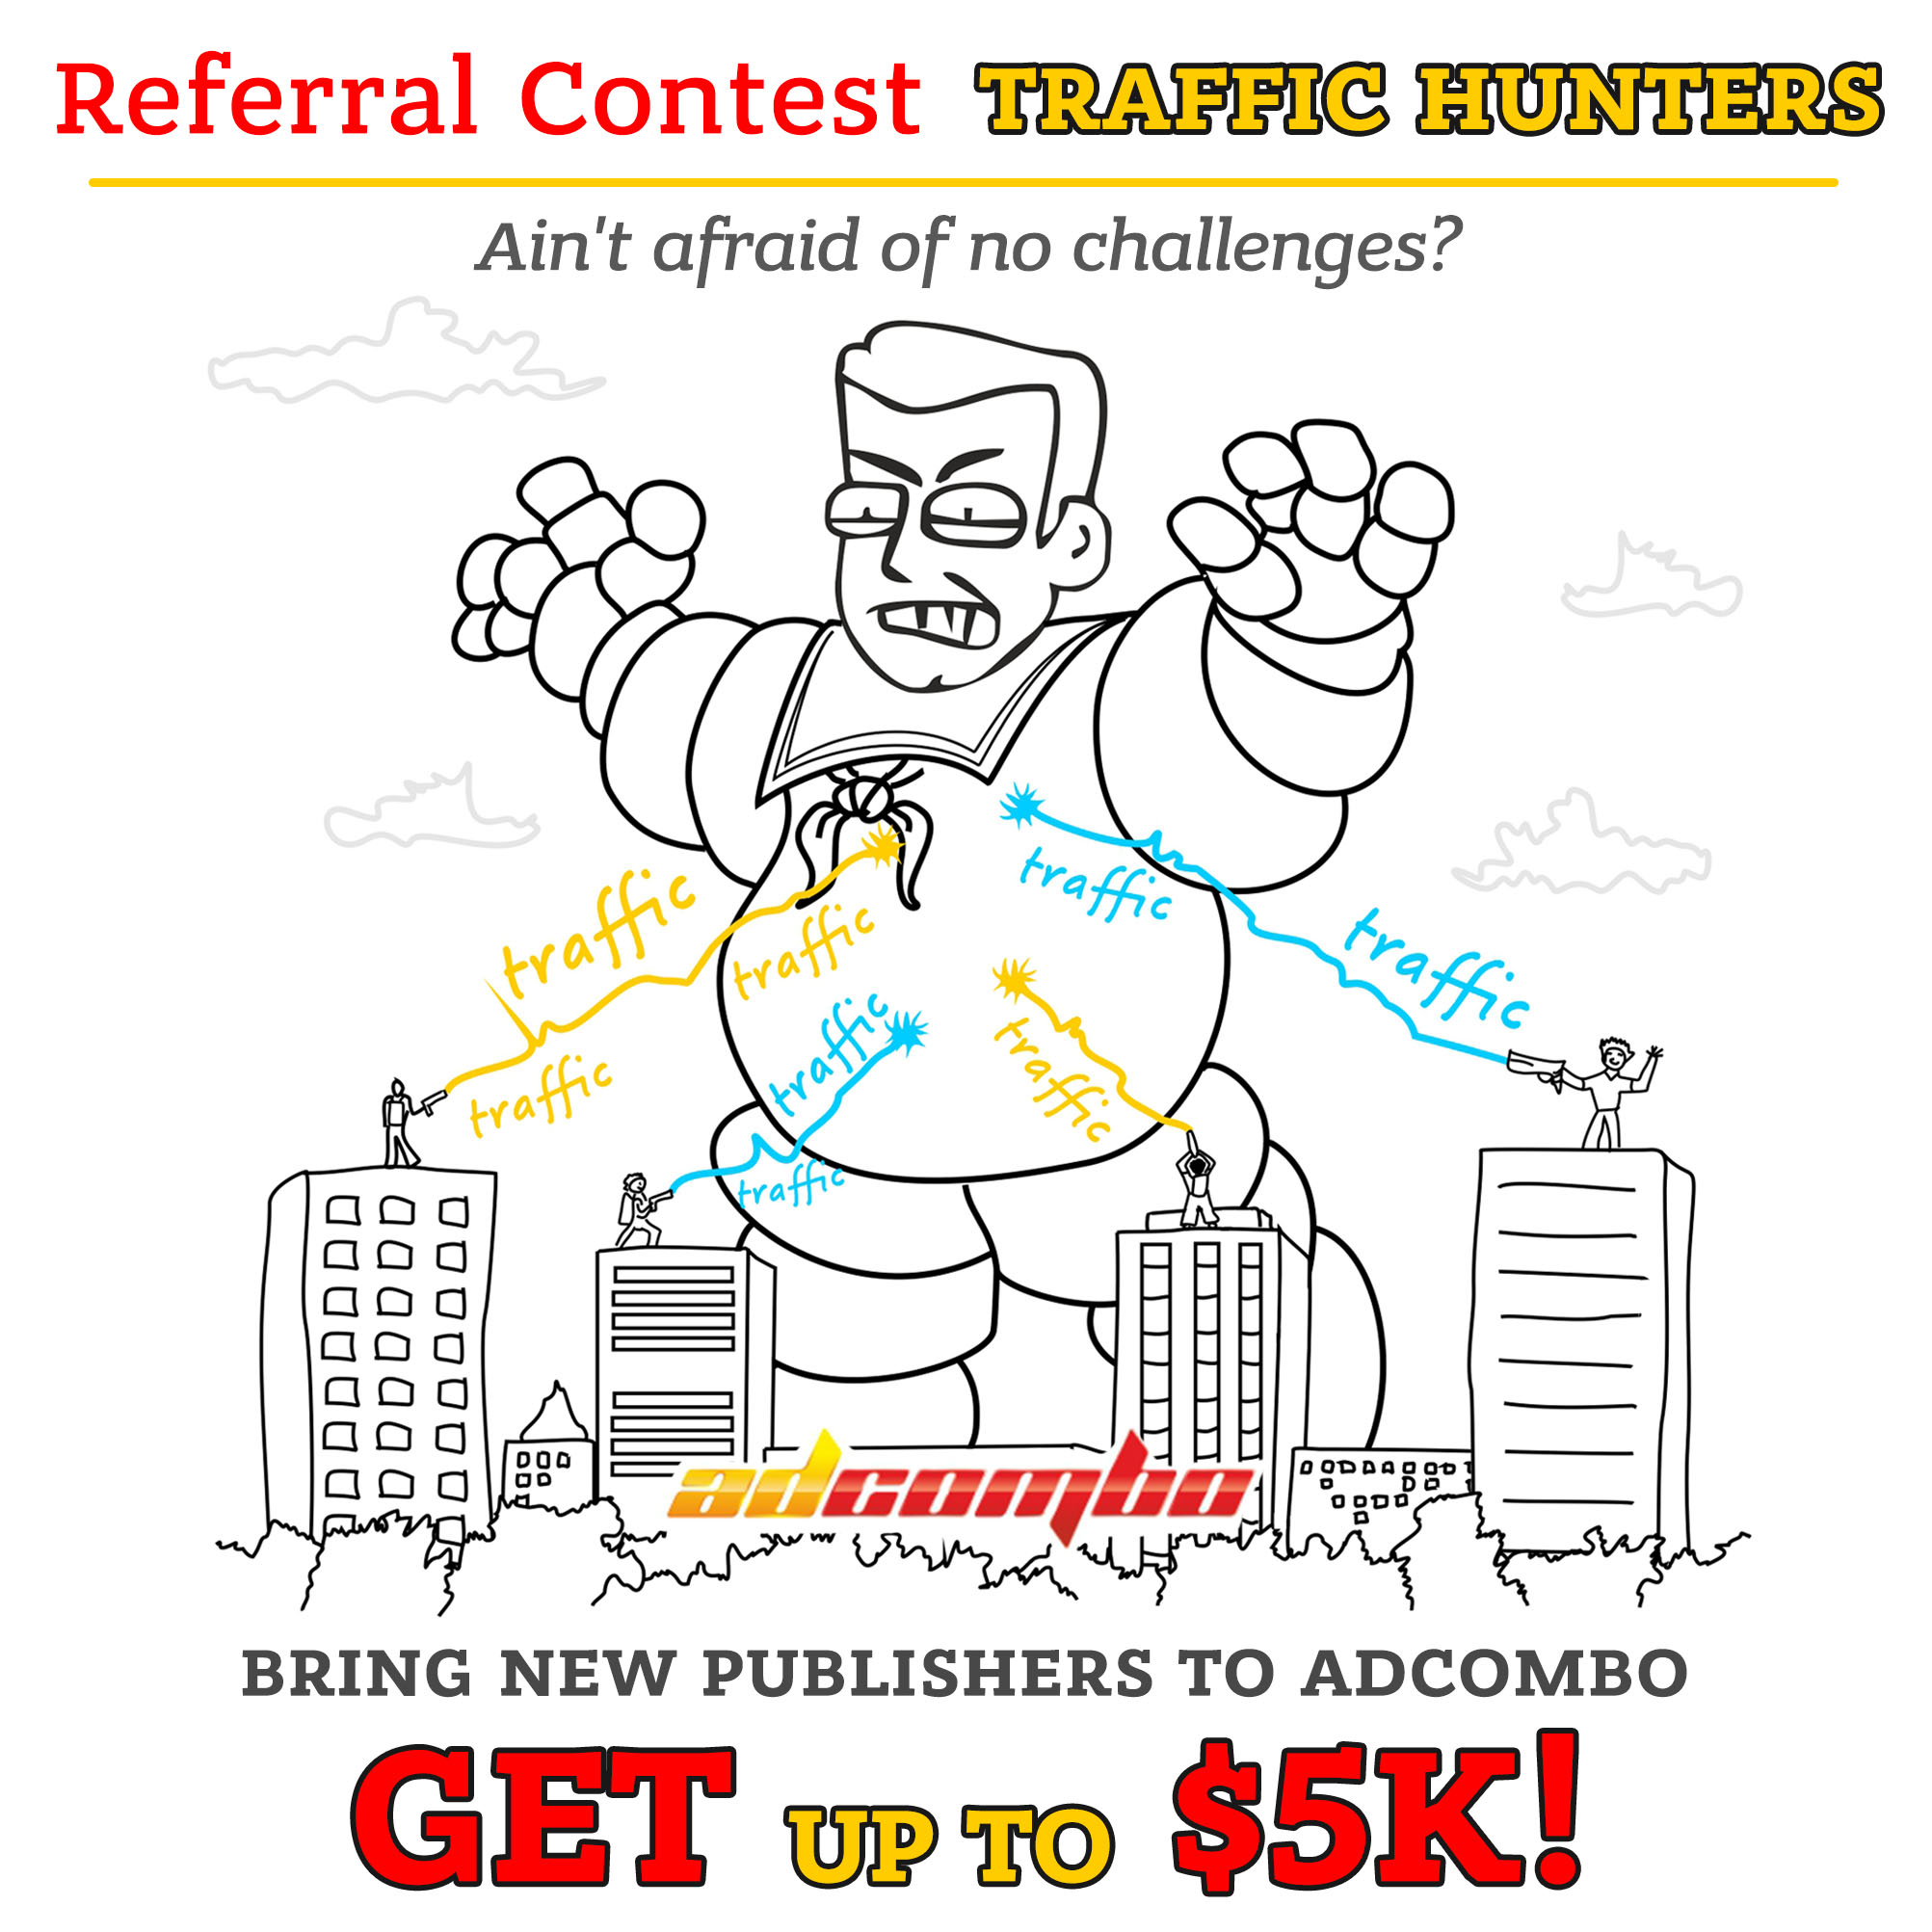 "Take part in our referral contest ""TRAFFIC HUNTERS"" and get up to $5k! - AdCombo"